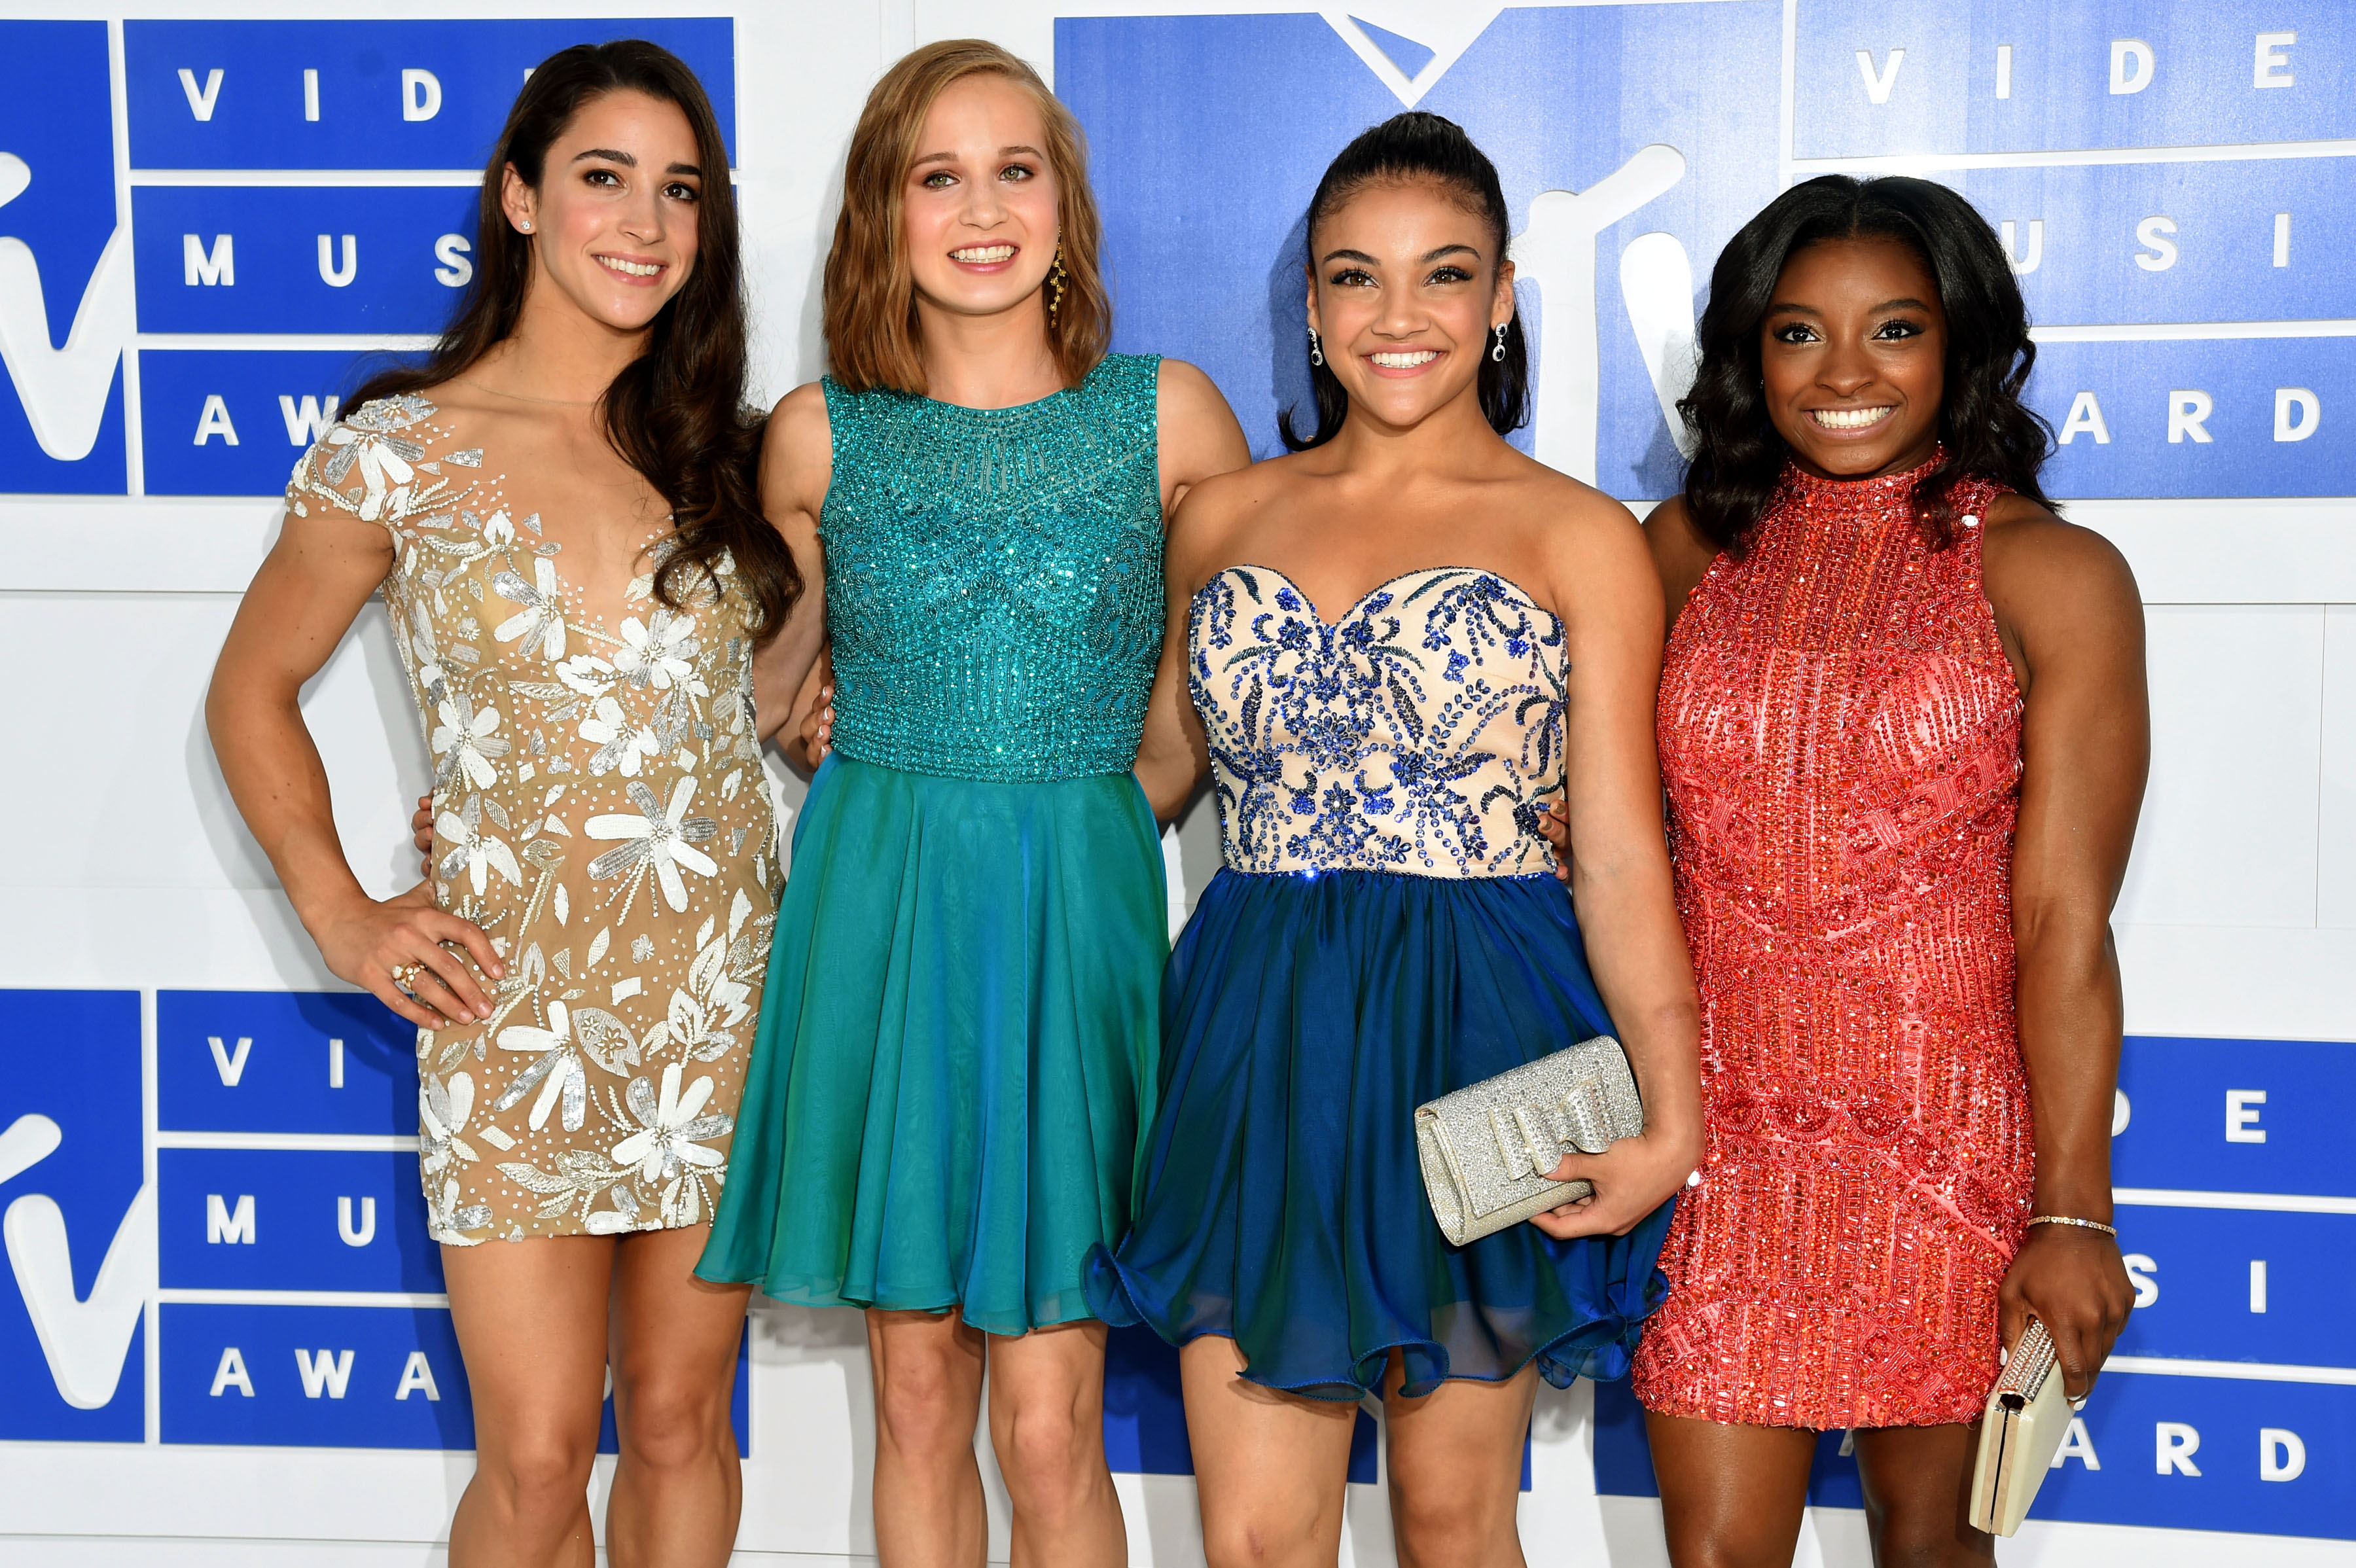 NEW YORK, NY - AUGUST 28:  (R-L) Olympic gymnasts Aly Raisman, Madison Kocian, Laurie Hernandez and Simone Biles attend the 2016 MTV Video Music Awards at Madison Square Garden on August 28, 2016 in New York City.  (Photo by Jamie McCarthy/Getty Images)